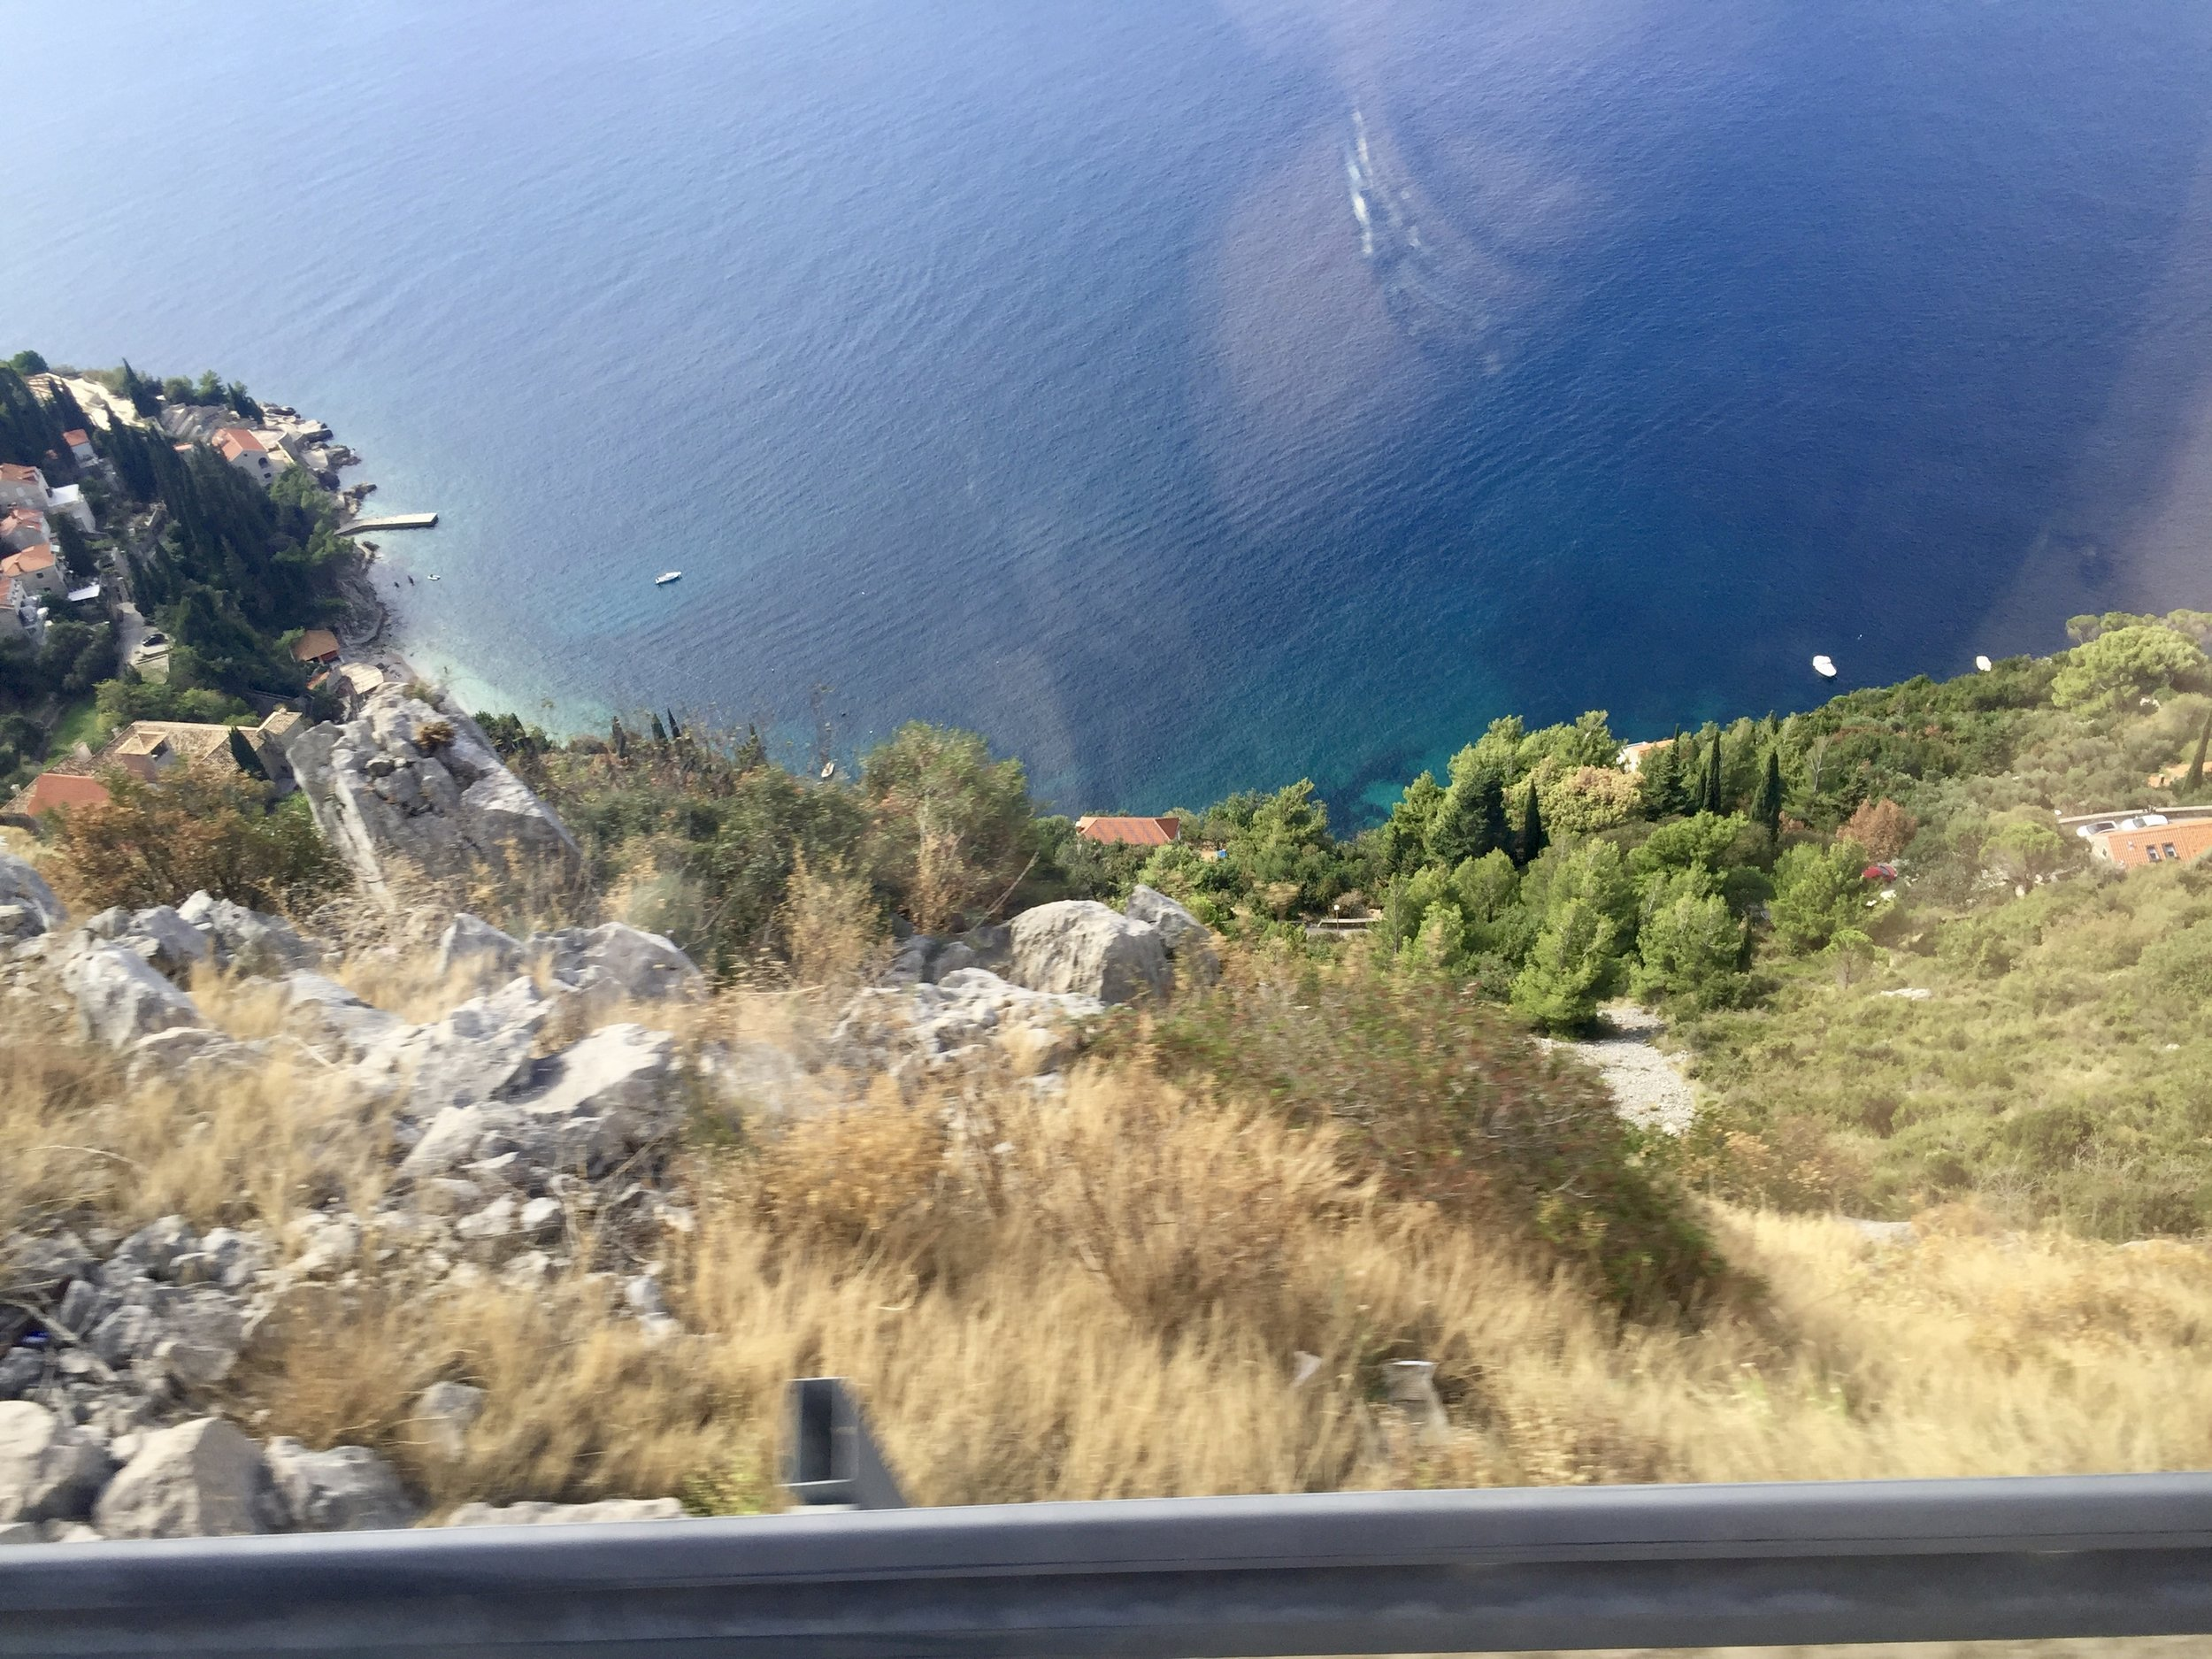 The drop-off down to the water, on our ride from Croatia to Montenegro